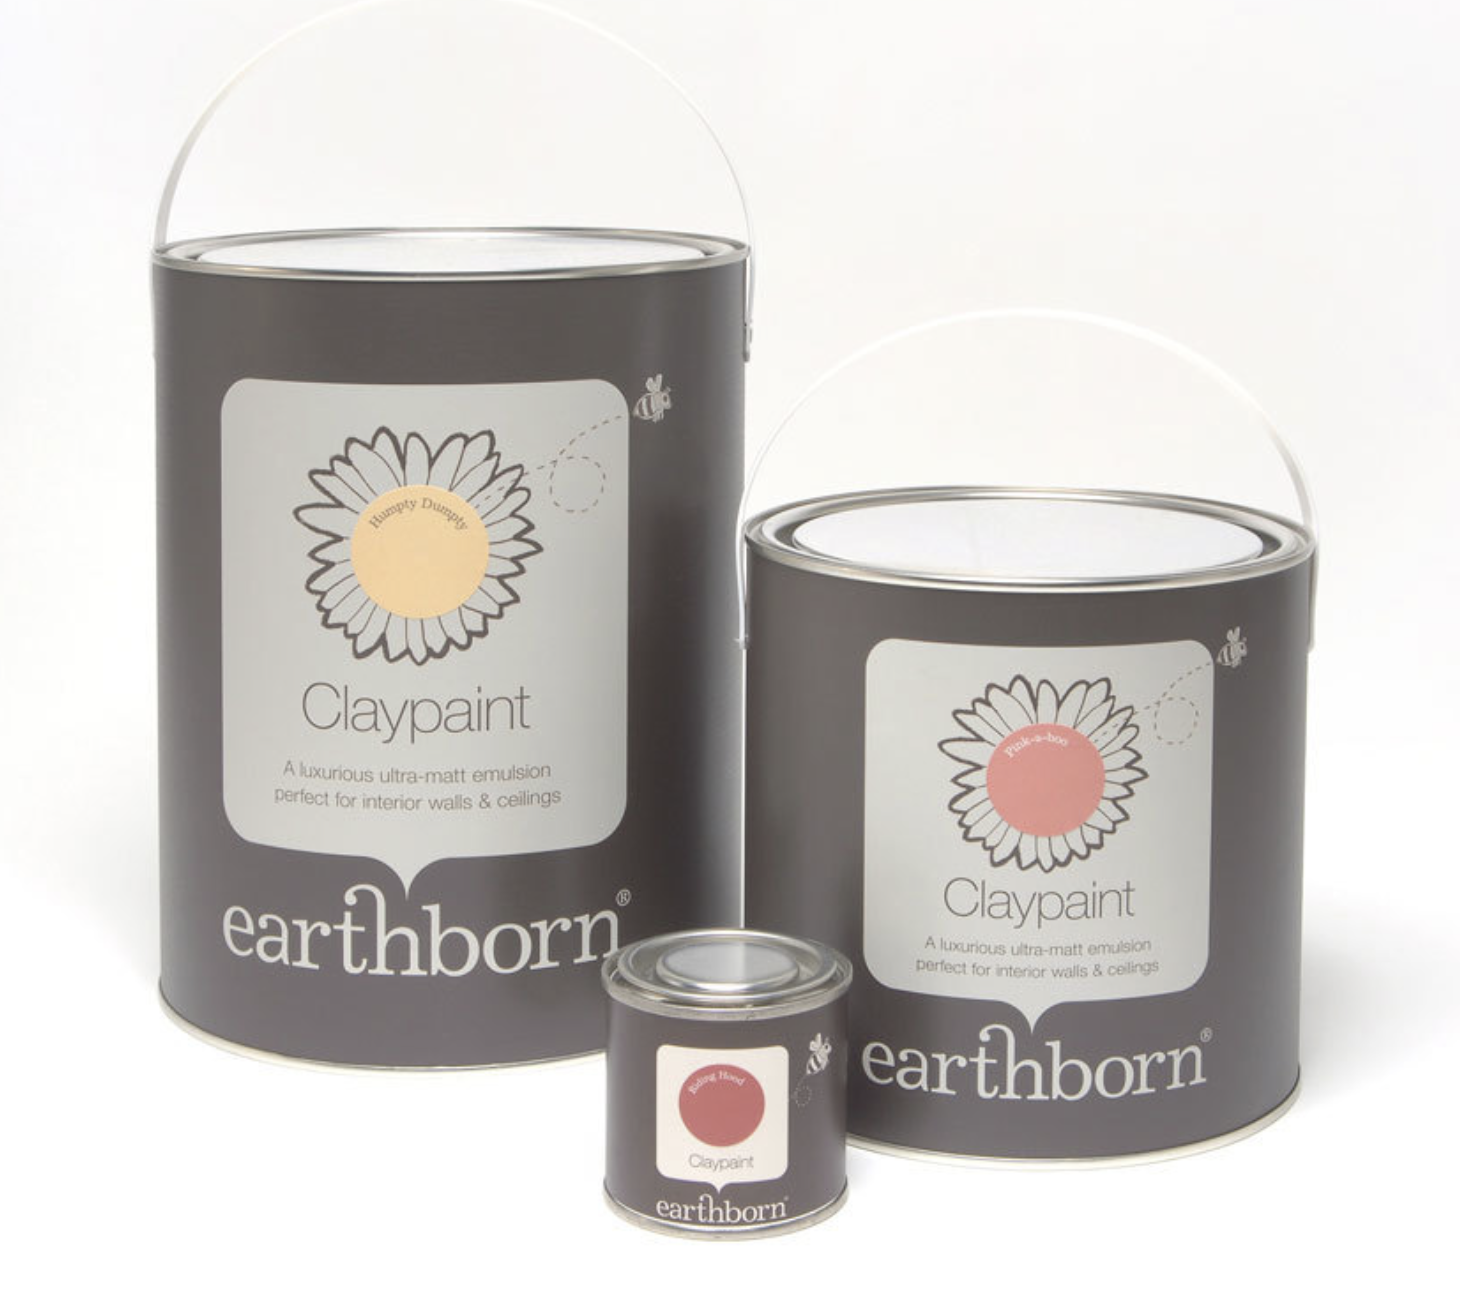 Earthborn Clay Paints carry the EU Eco-Labelflower symbol.